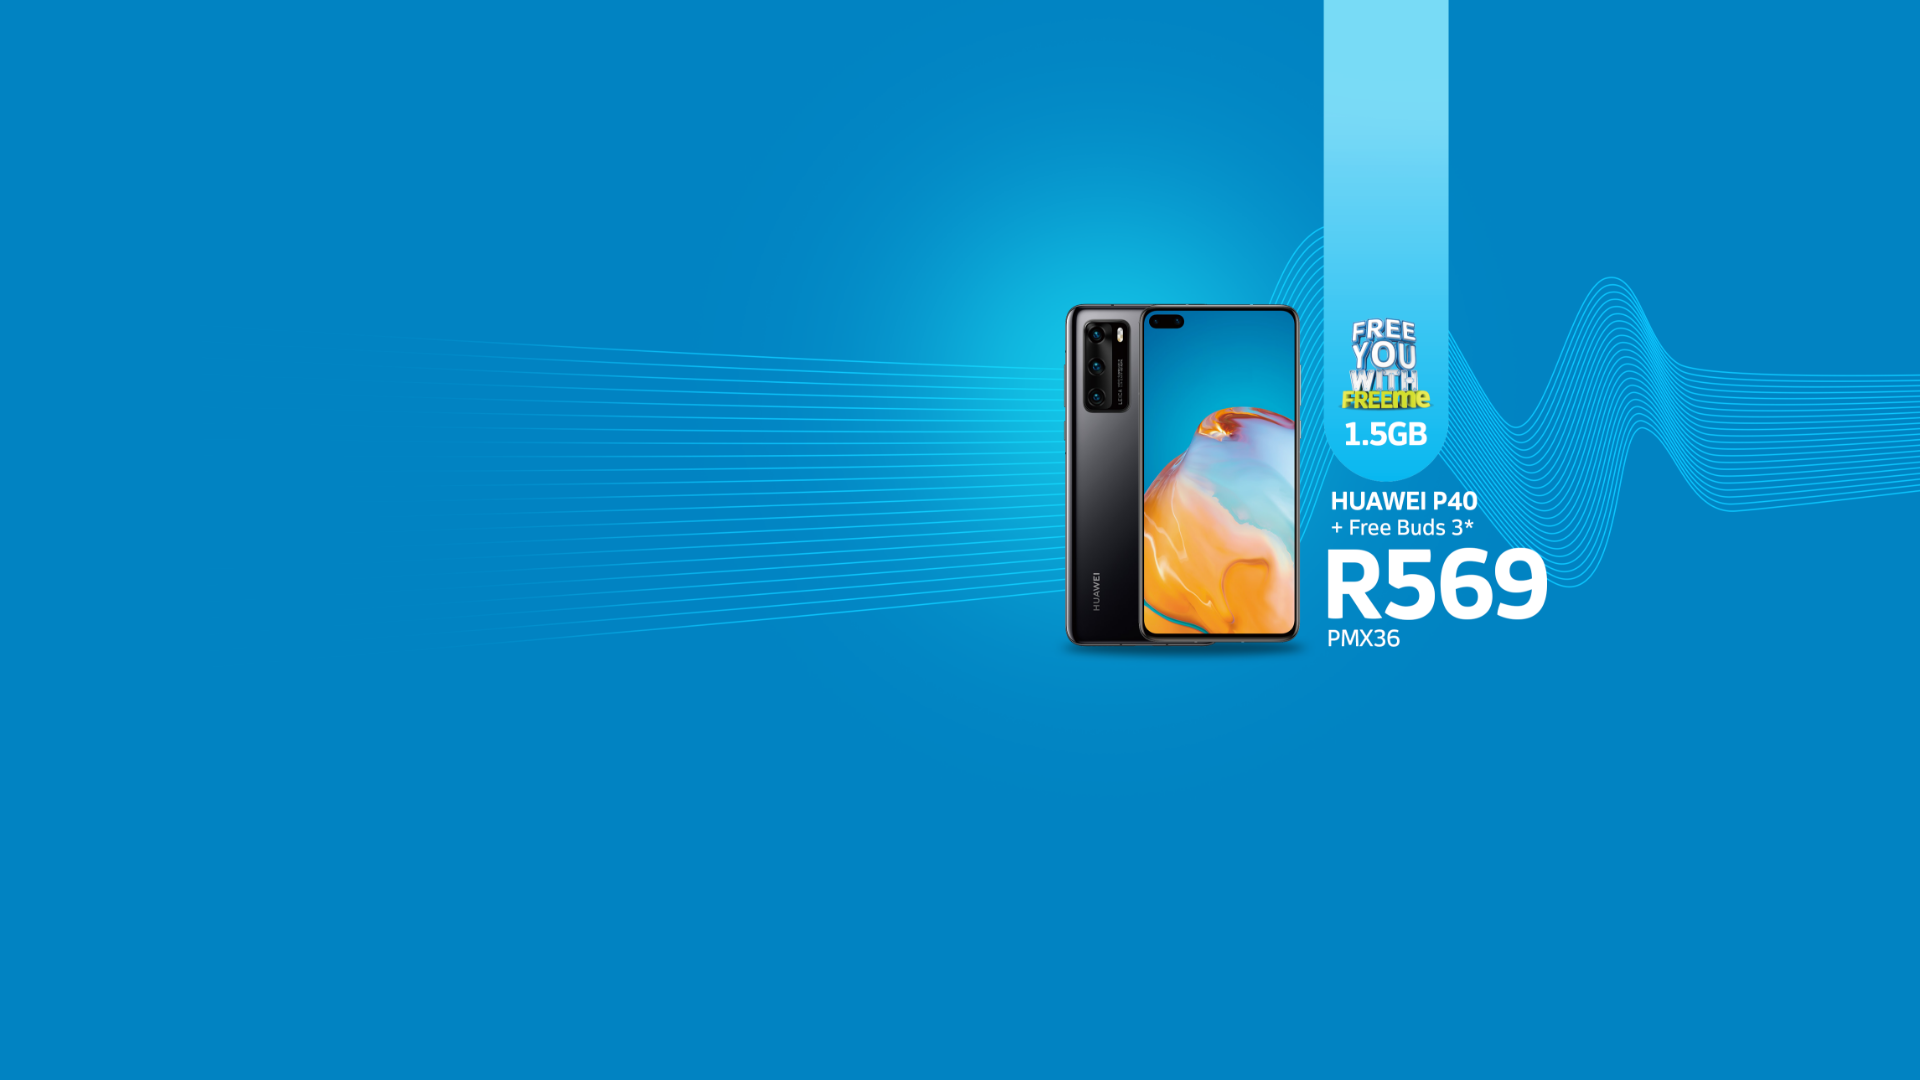 "<div style=""line-height:2rem"">Visionary photography meets inspiring design with the all-new Huawei P40 & P40 Pro</div>"